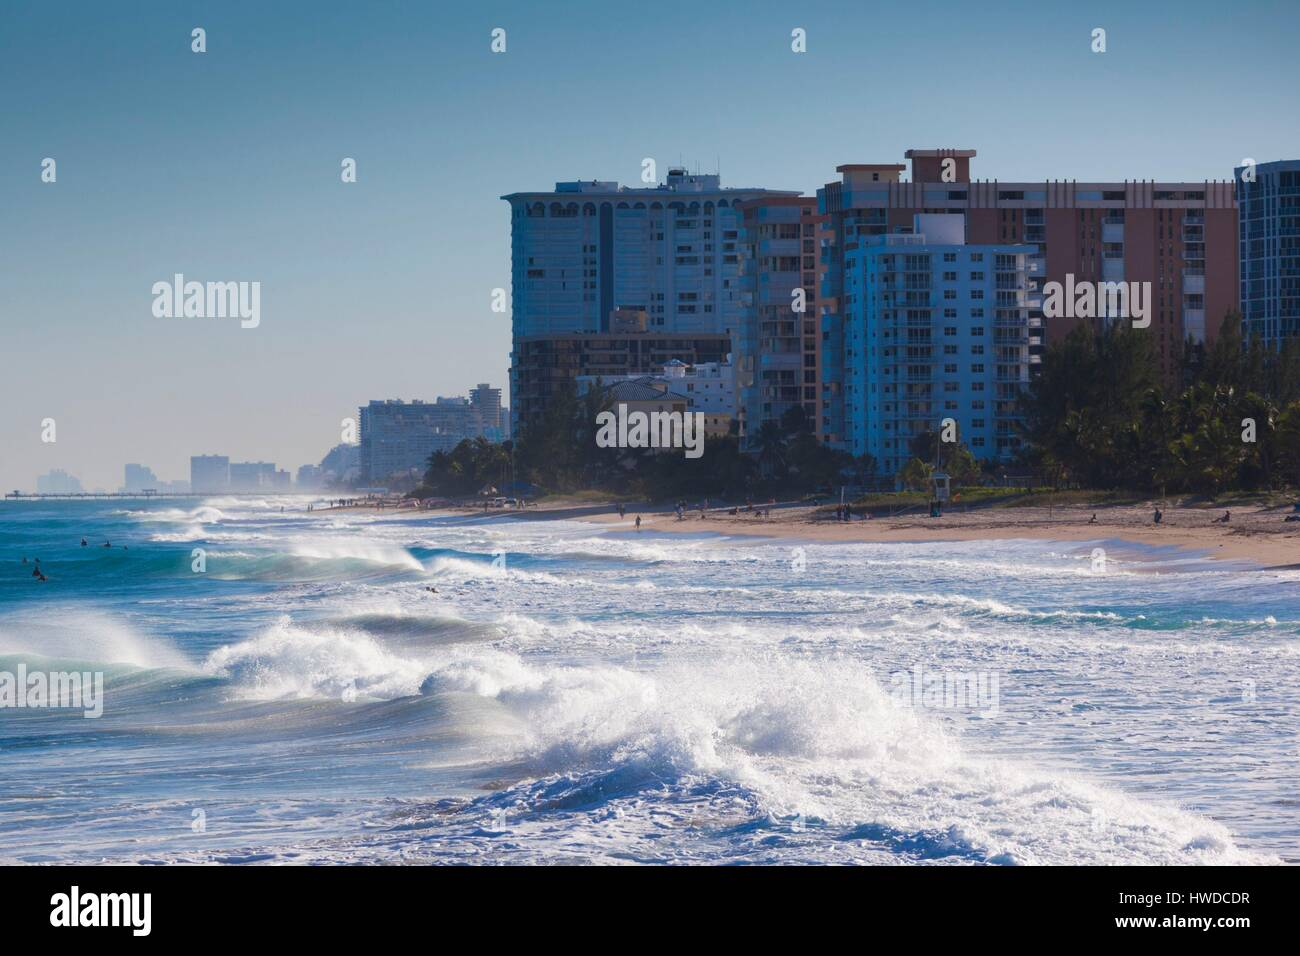 United States, Florida, Pompano Beach, beach view - Stock Image